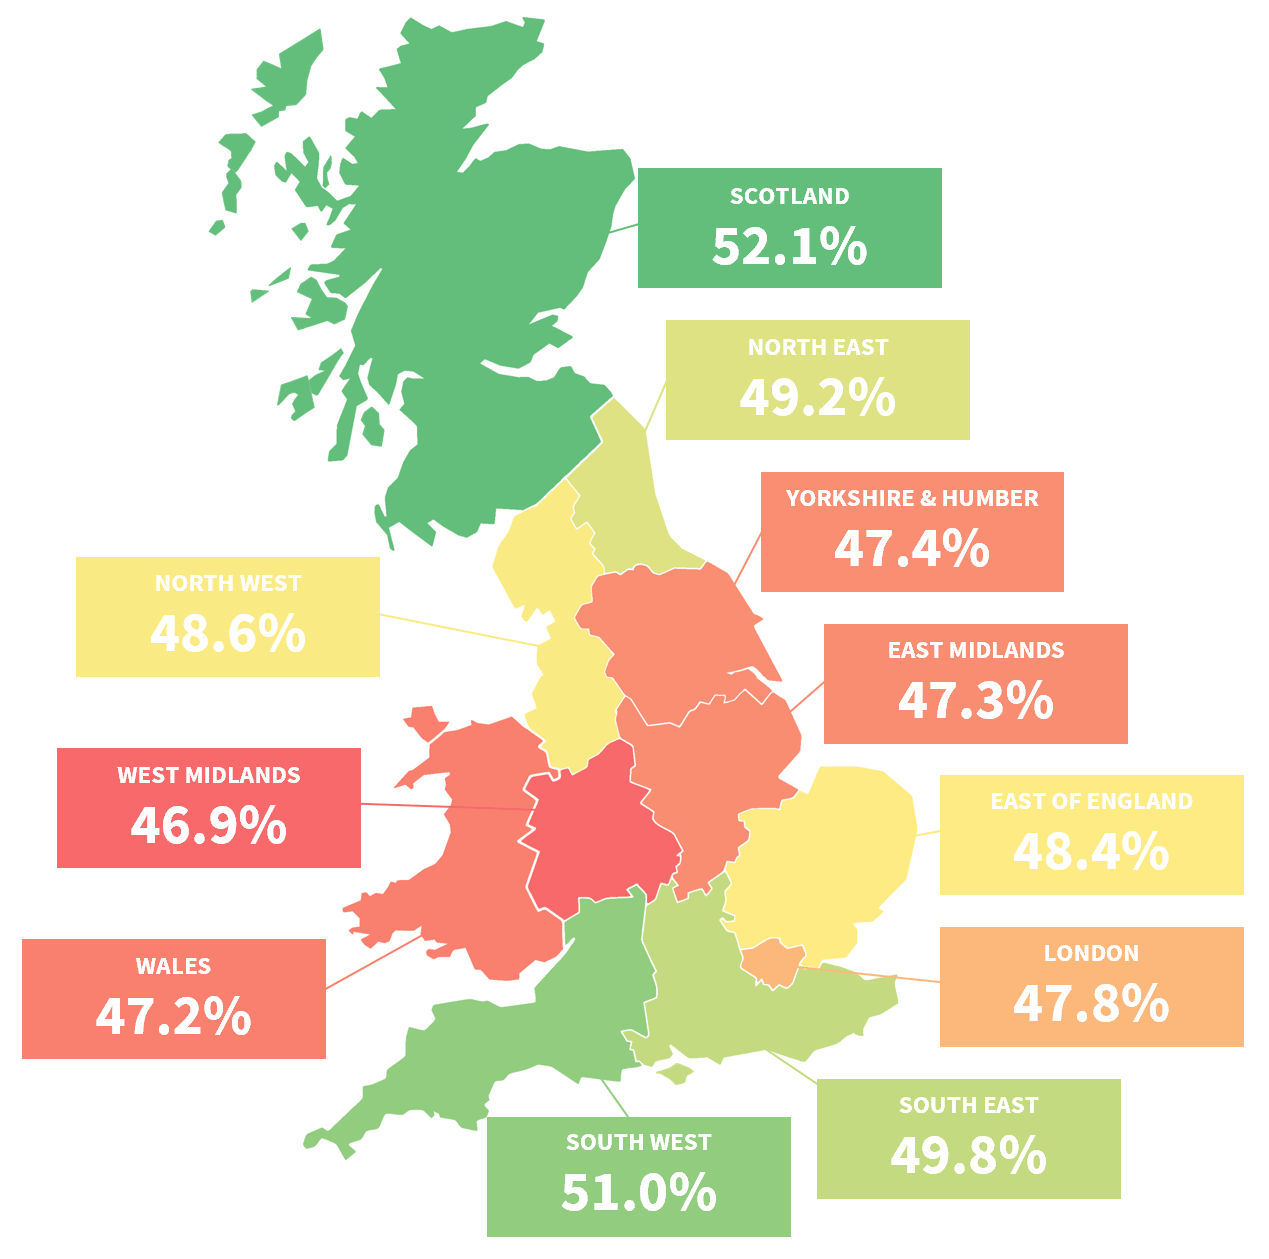 A map with labels showing the theory test pass rates for each region in Great Britain.